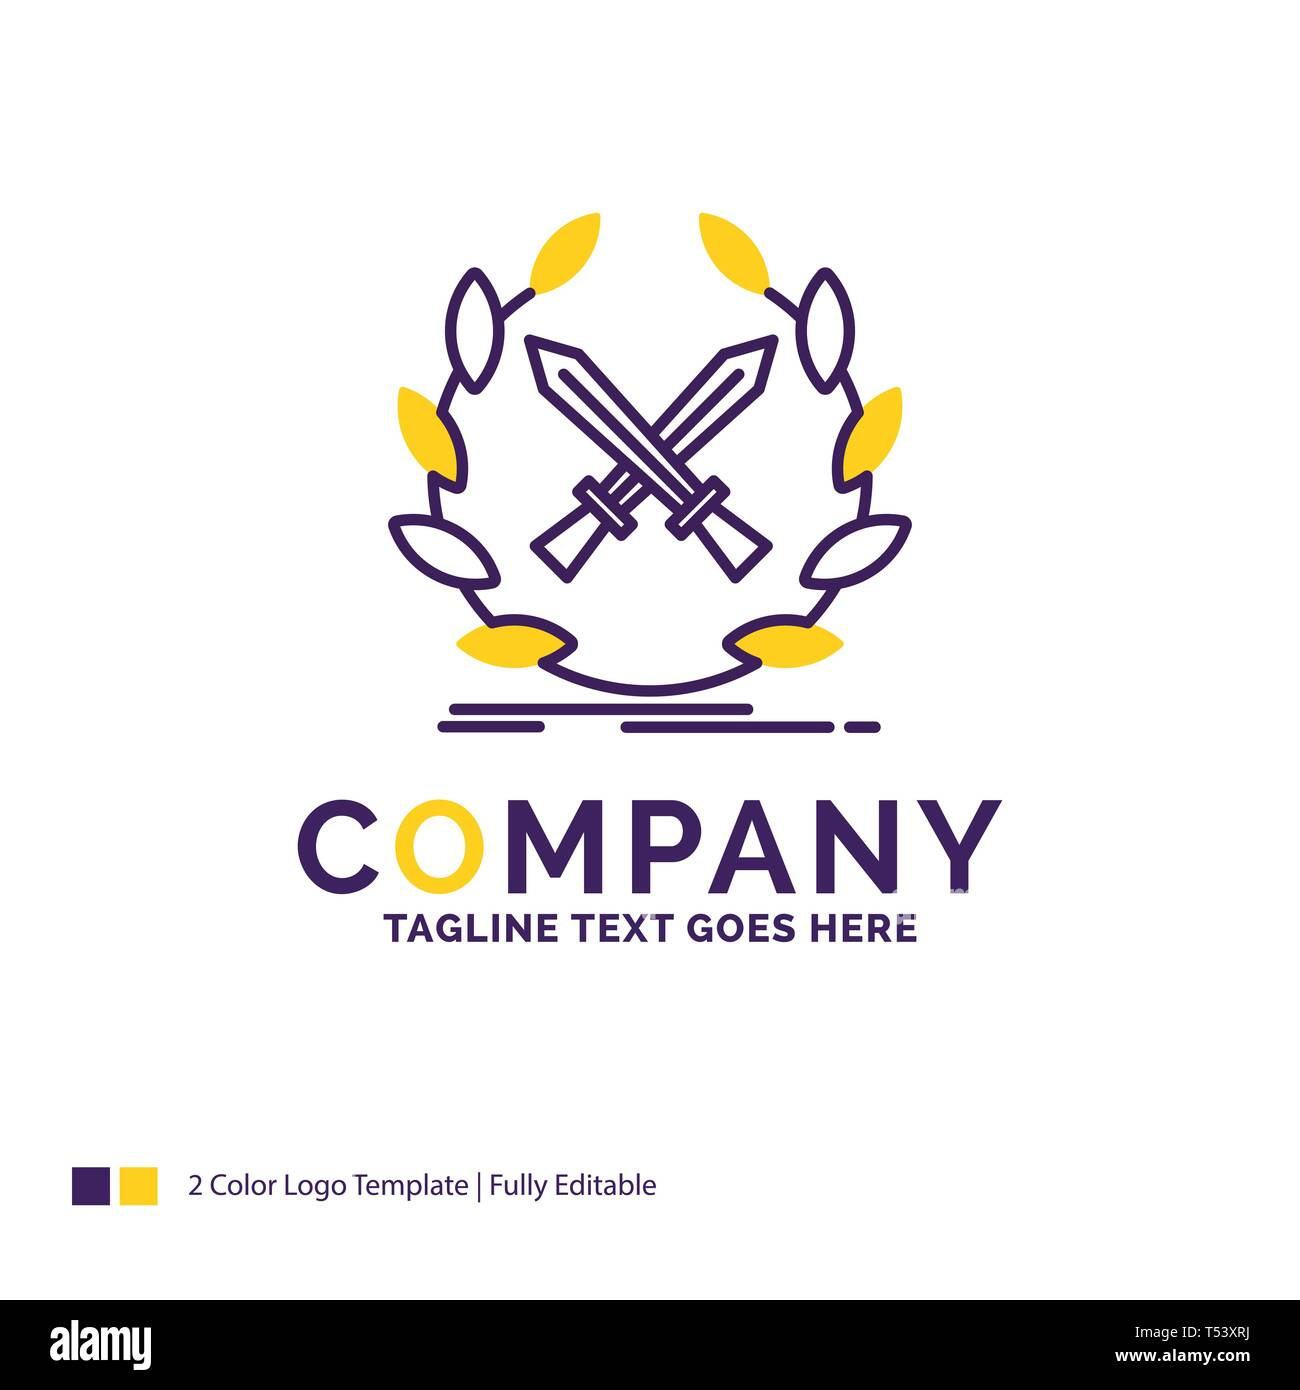 Company Name Logo Design For battle, emblem, game, label, swords. Purple and yellow Brand Name Design with place for Tagline. Creative Logo template f - Stock Image